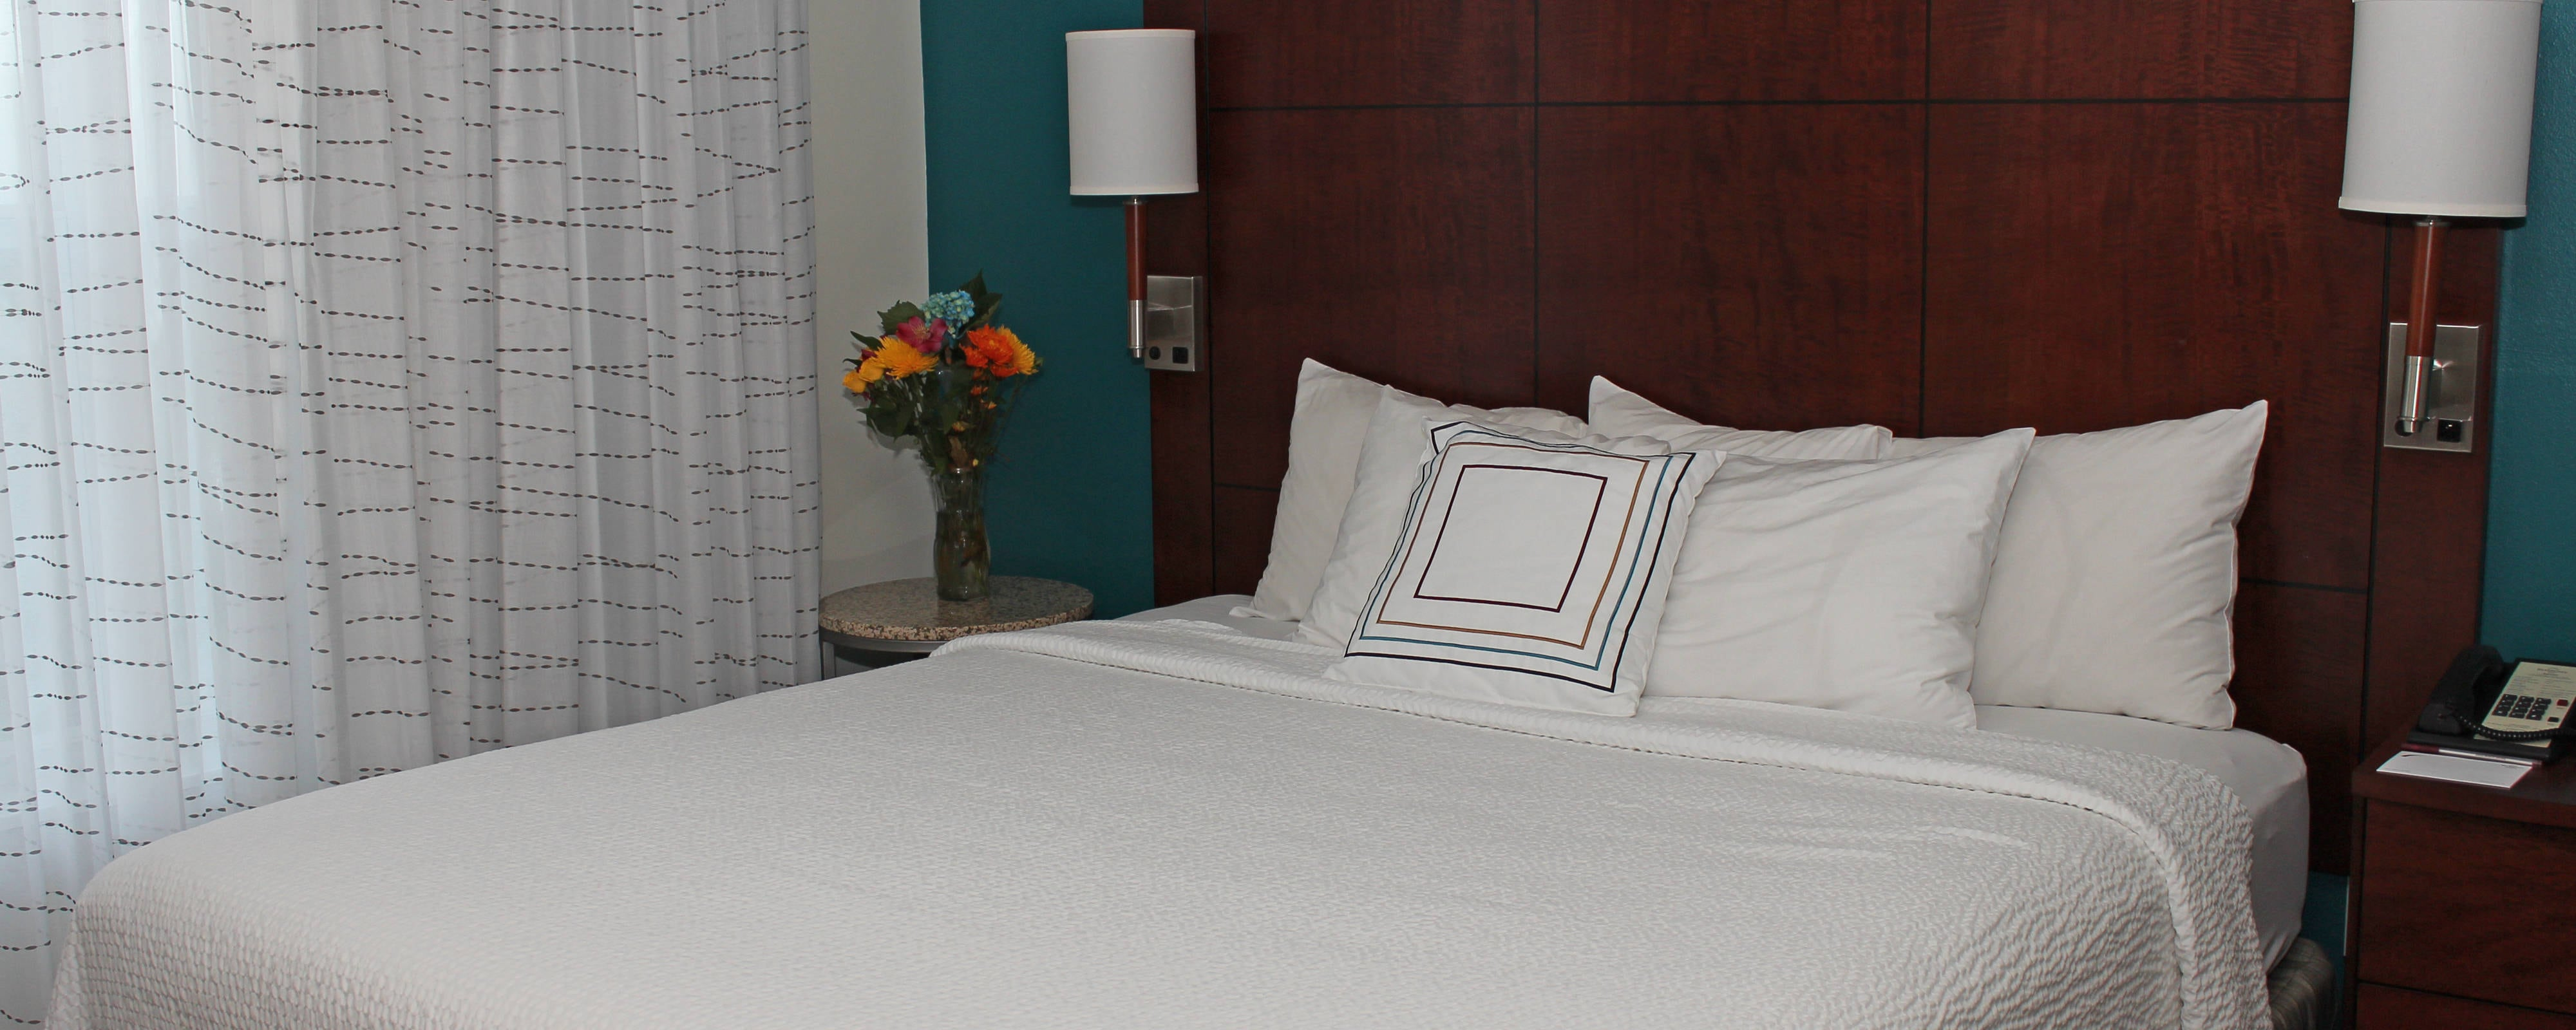 Residence Inn Sebring King Bed